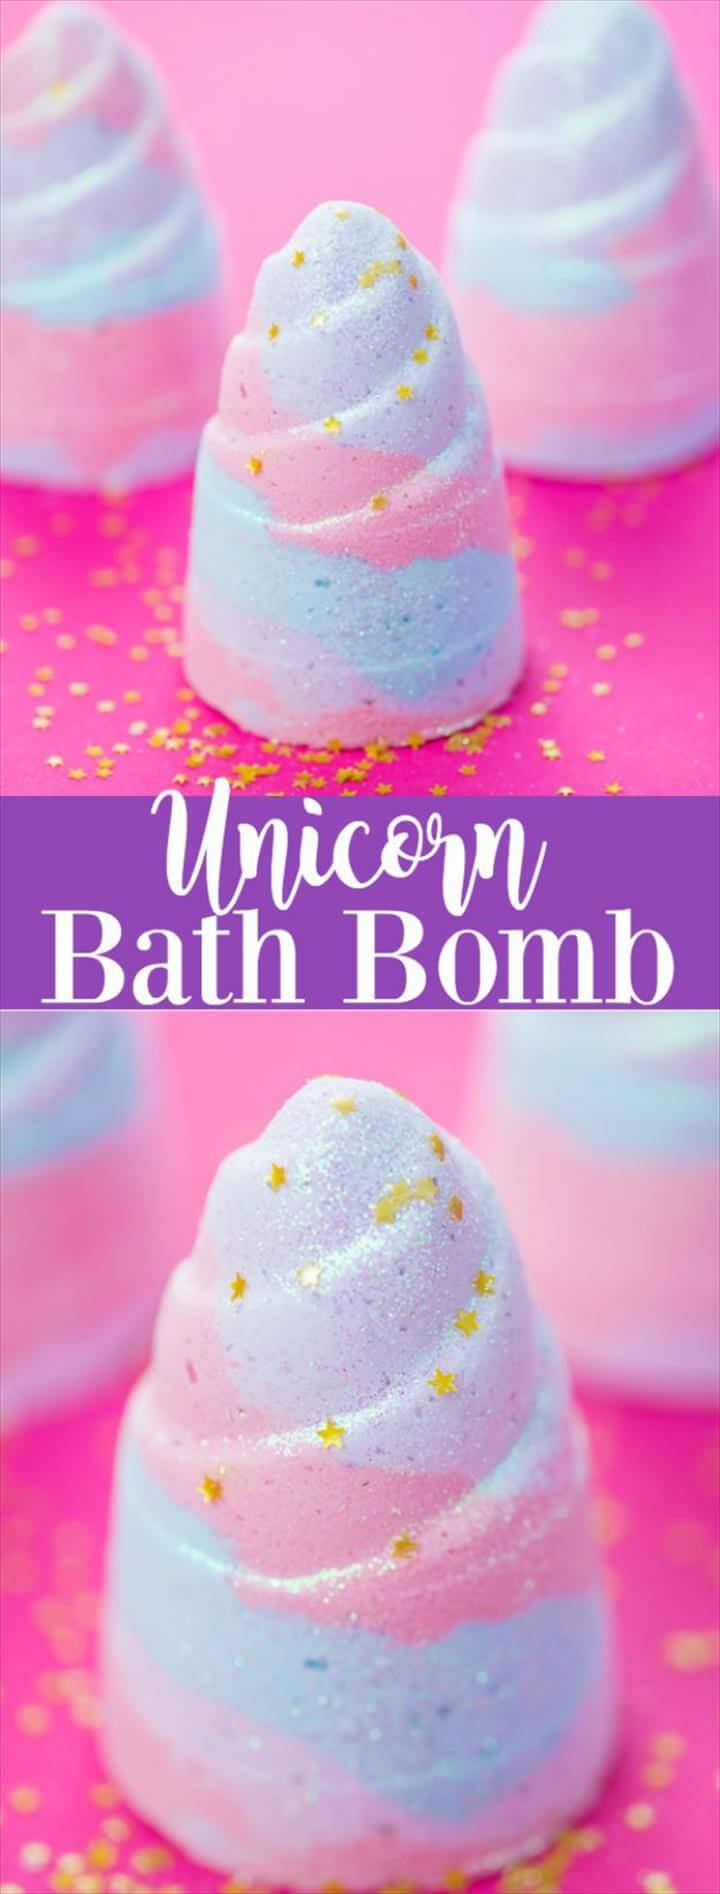 Cool DIY Bath Bombs to Make At Home - Unicorn Bath Bomb - Recipes and Tutorial